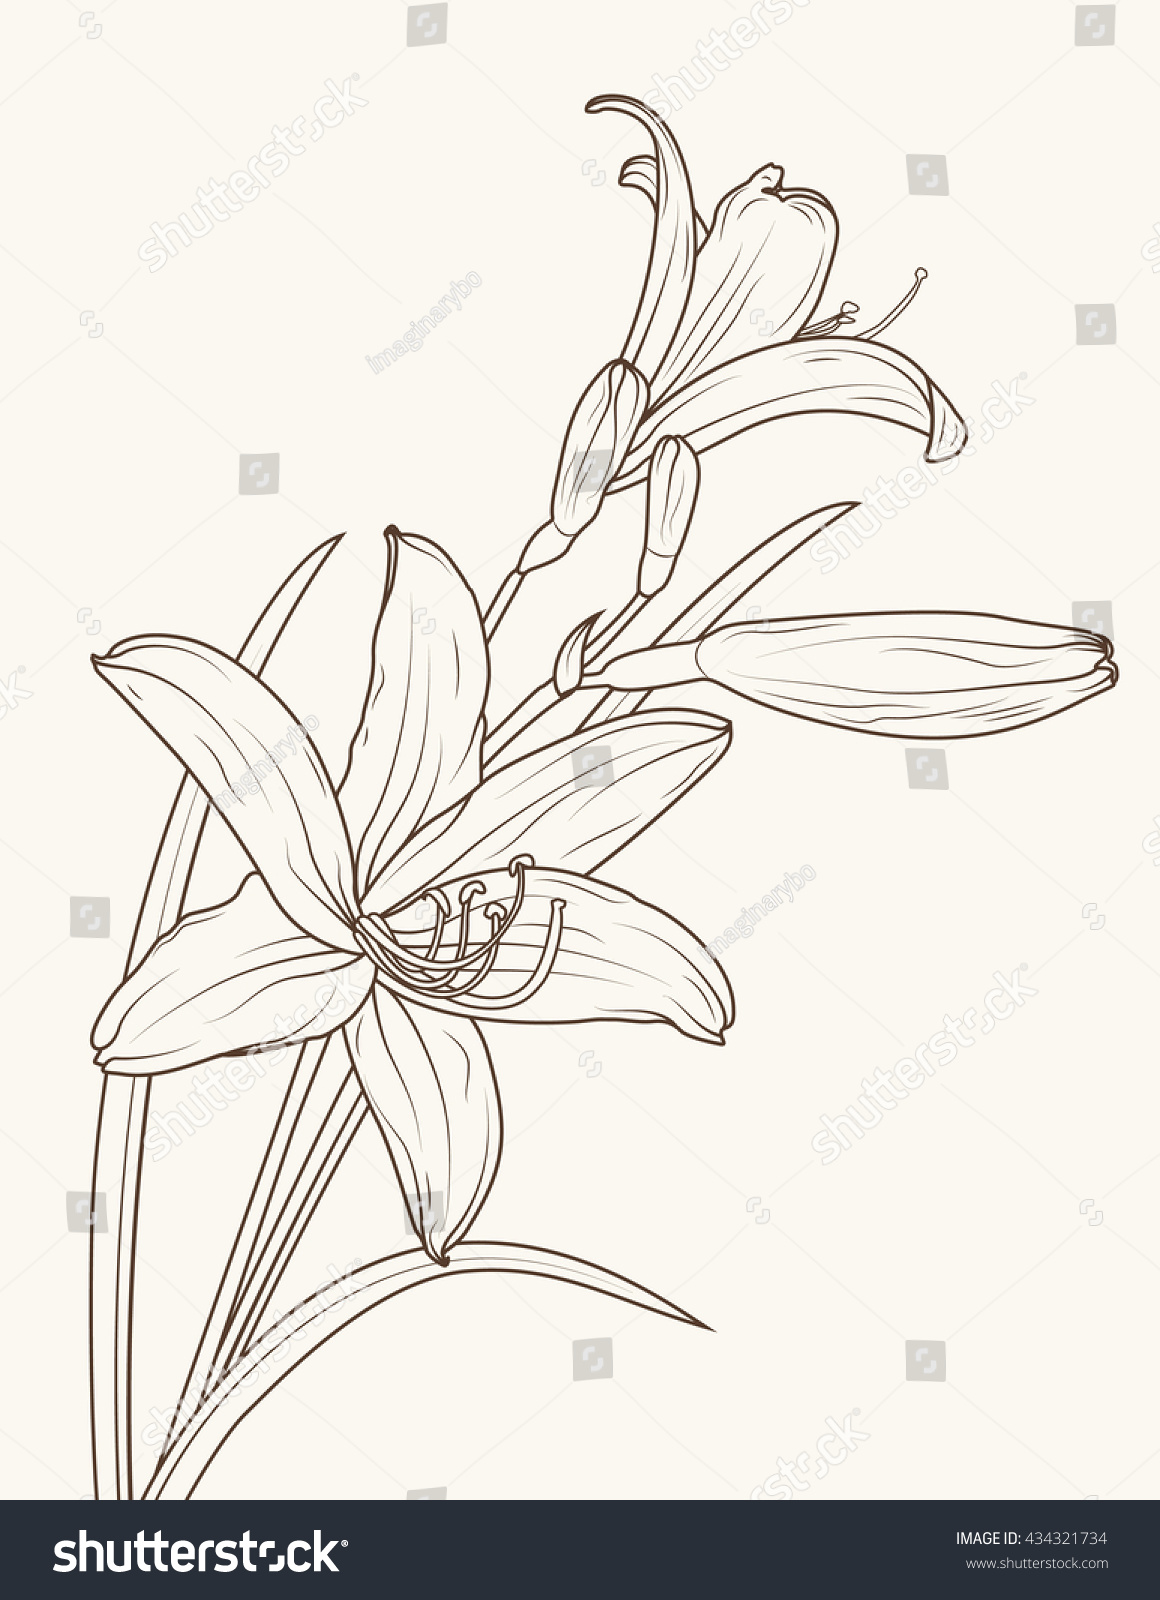 Isolated Elegant Lily Flowers With Stem And Leaves Vector Sketch